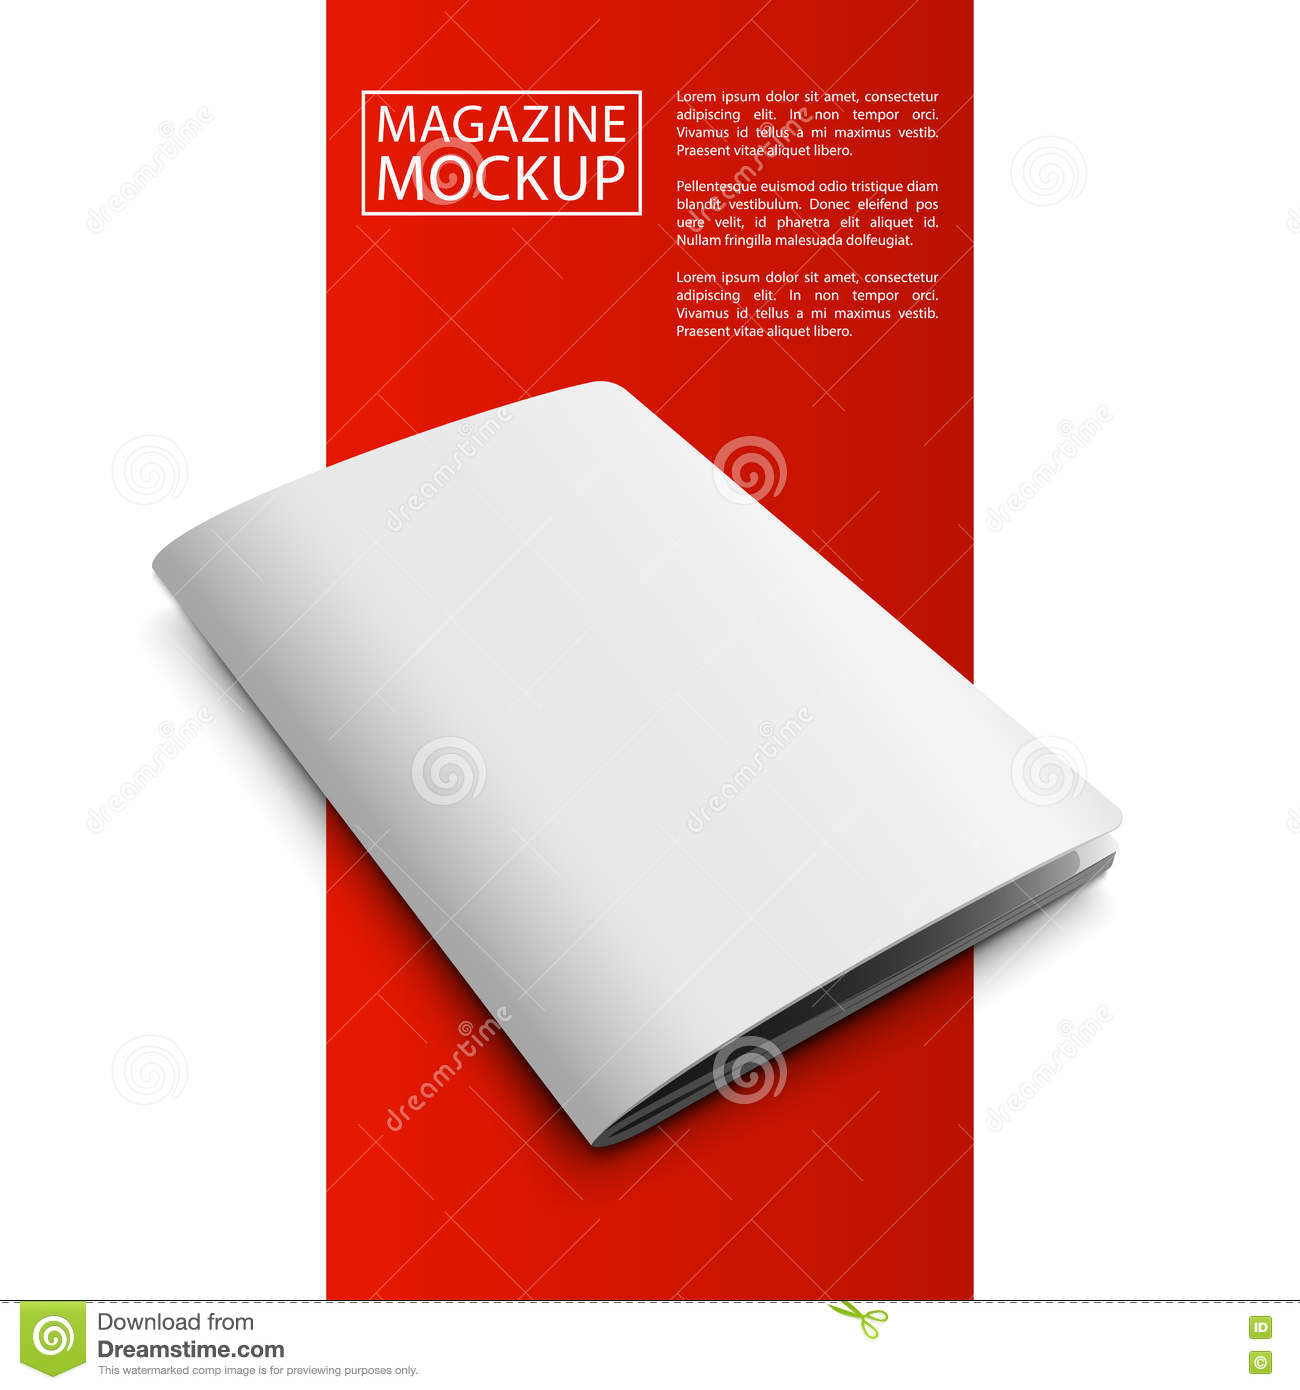 Mockup Magazine Red Line2-01 Stock Vector - Illustration of empty